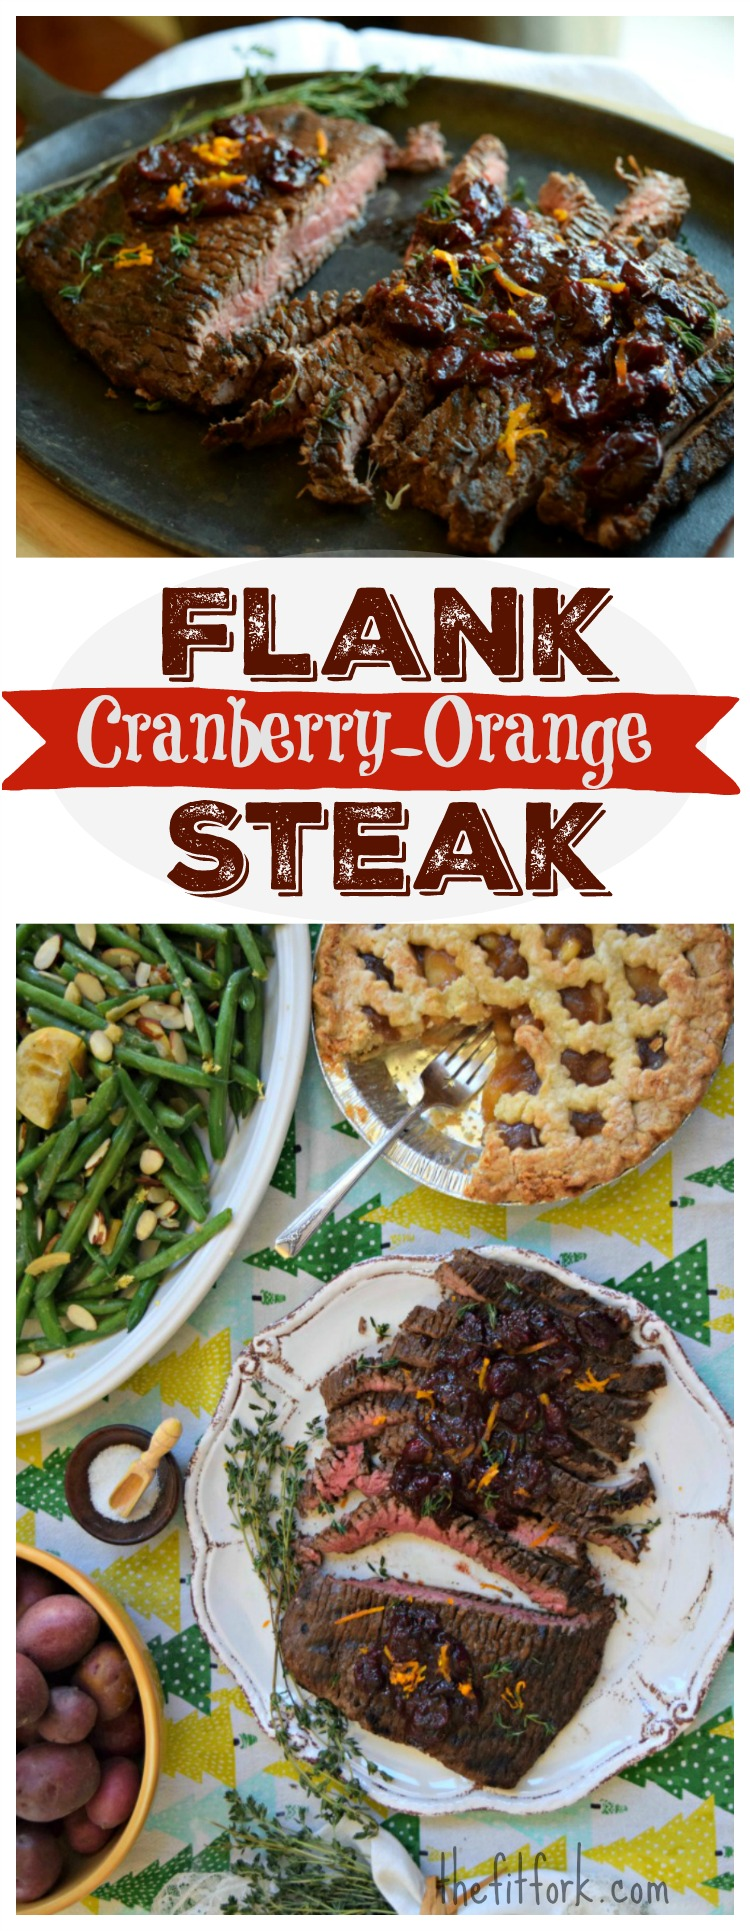 Cranberry Orange Flank Steak is a quick and easy meal for your family and guests. Make a new holiday tradition with this lean cut that can be grilled indoors or out!